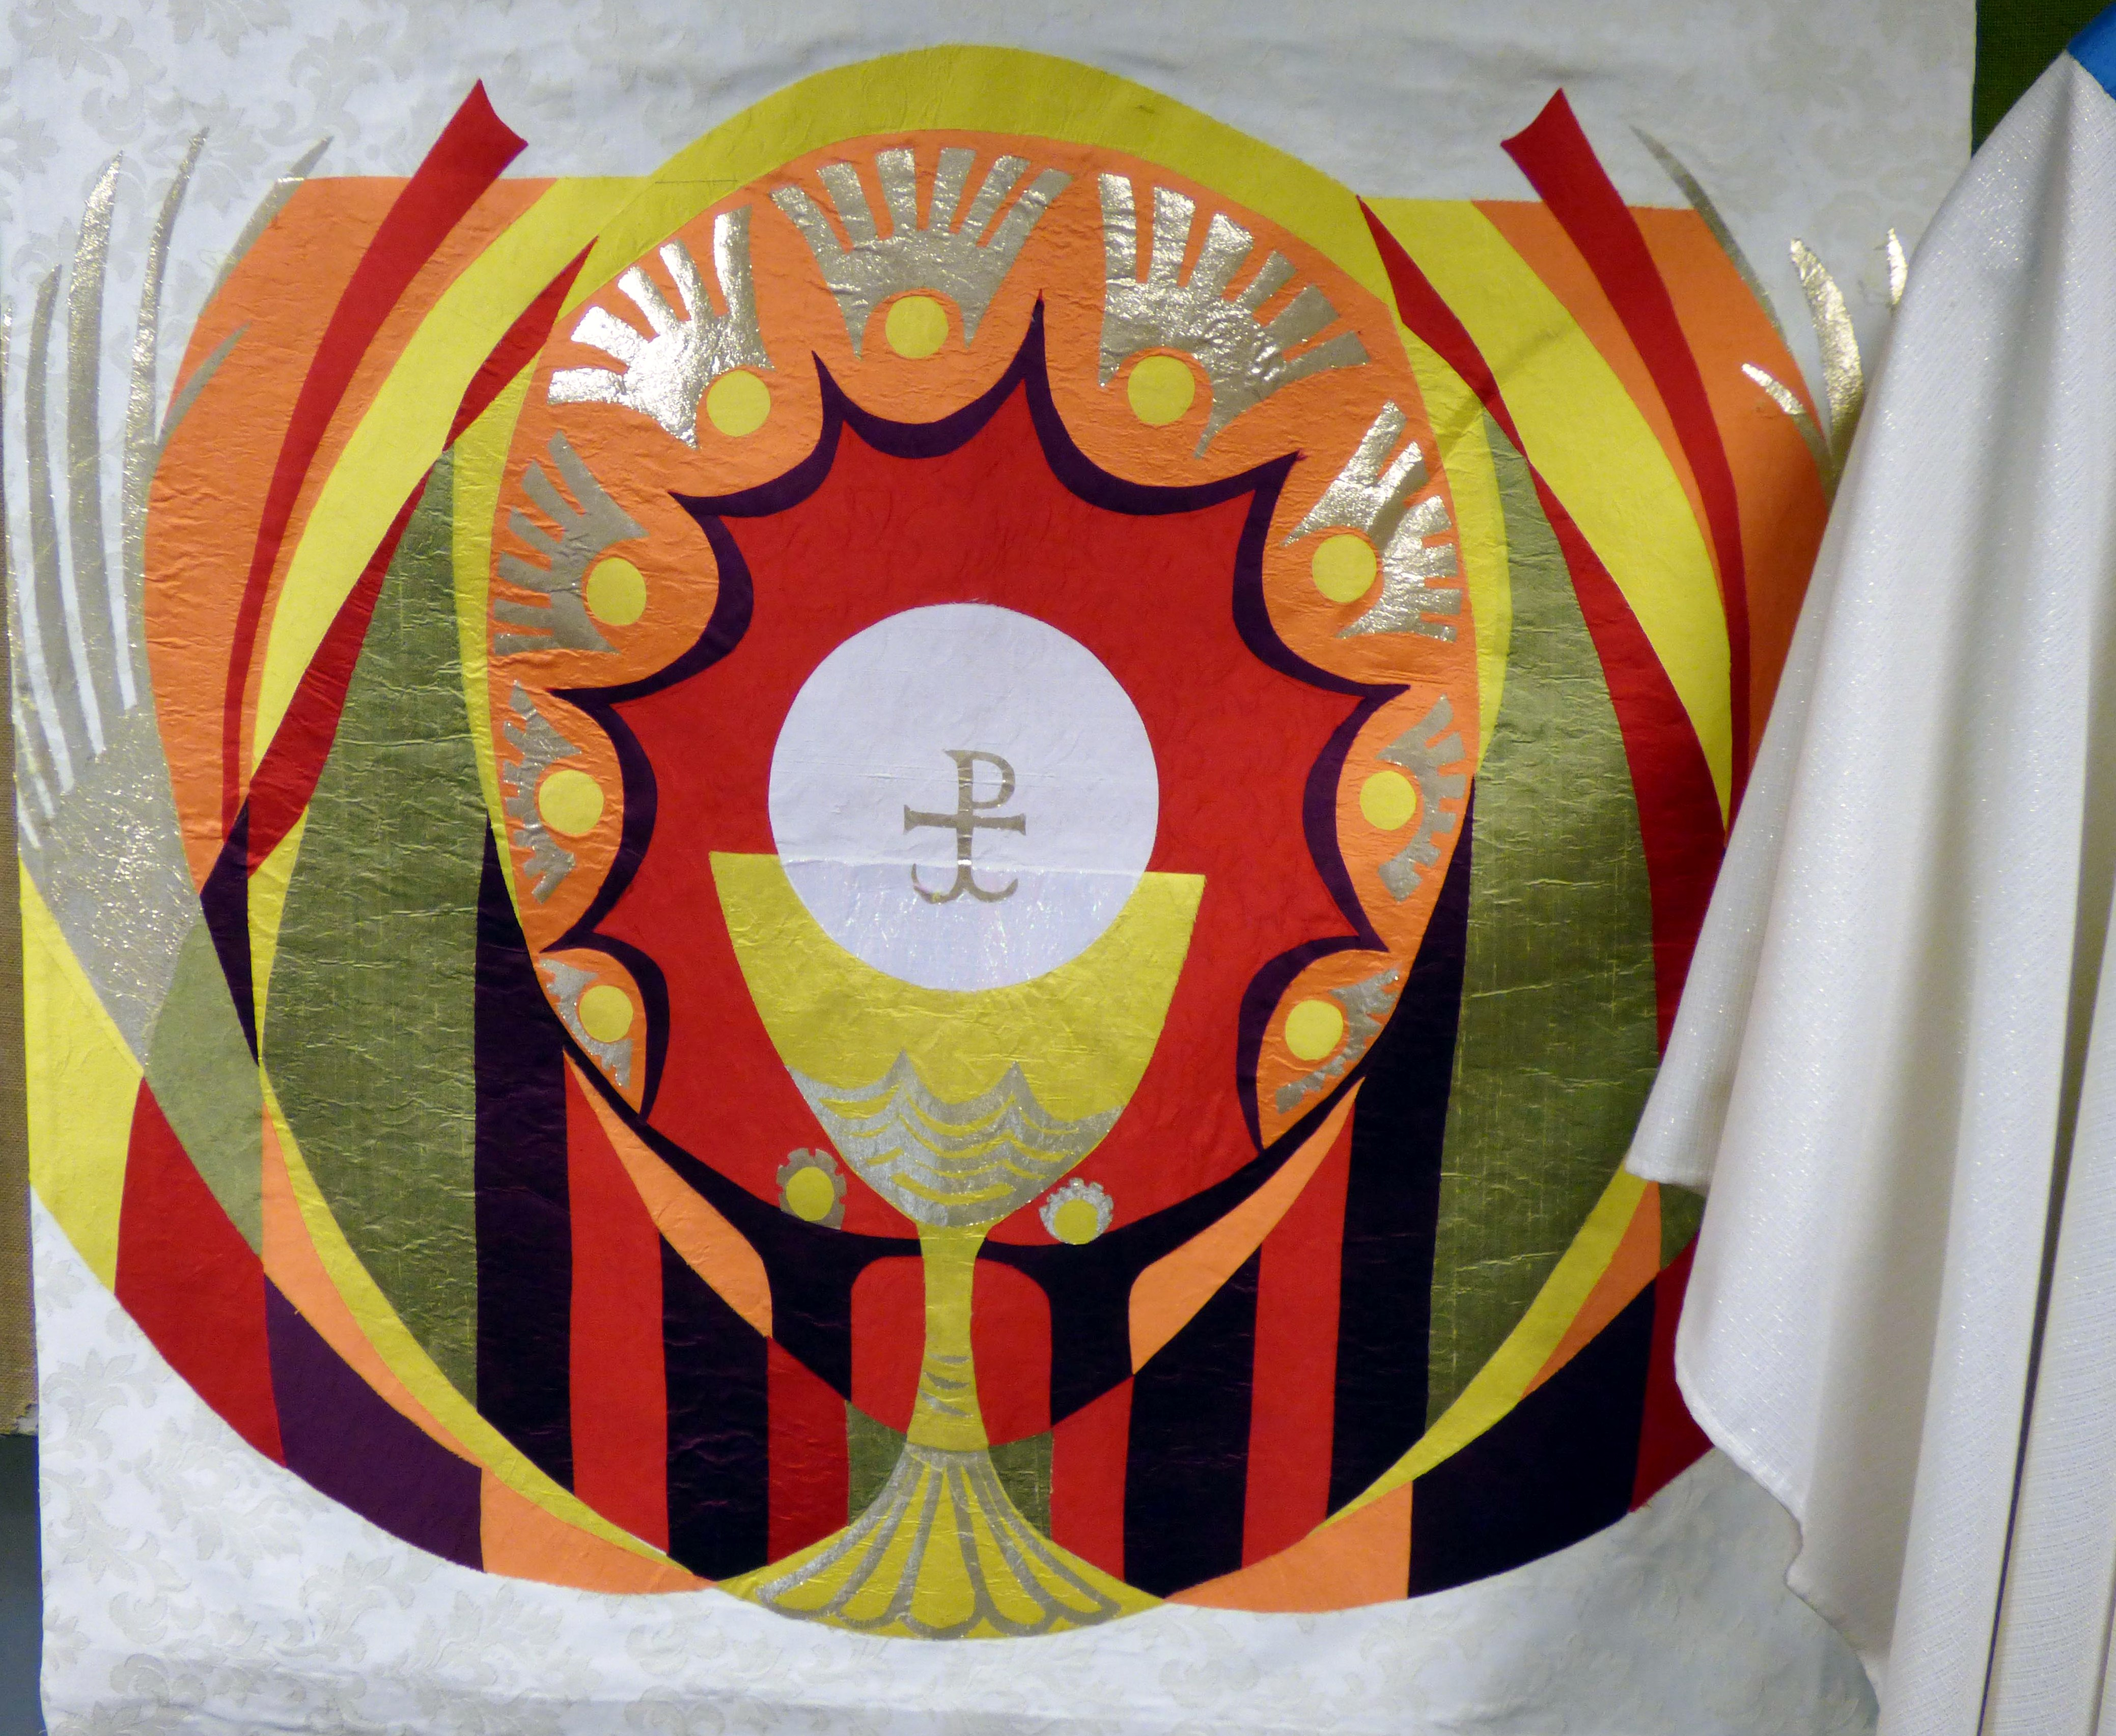 EASTER ALTAR FRONTAL at Embroidery Studio open day, Liverpool Metropolitan Cathedral 2017